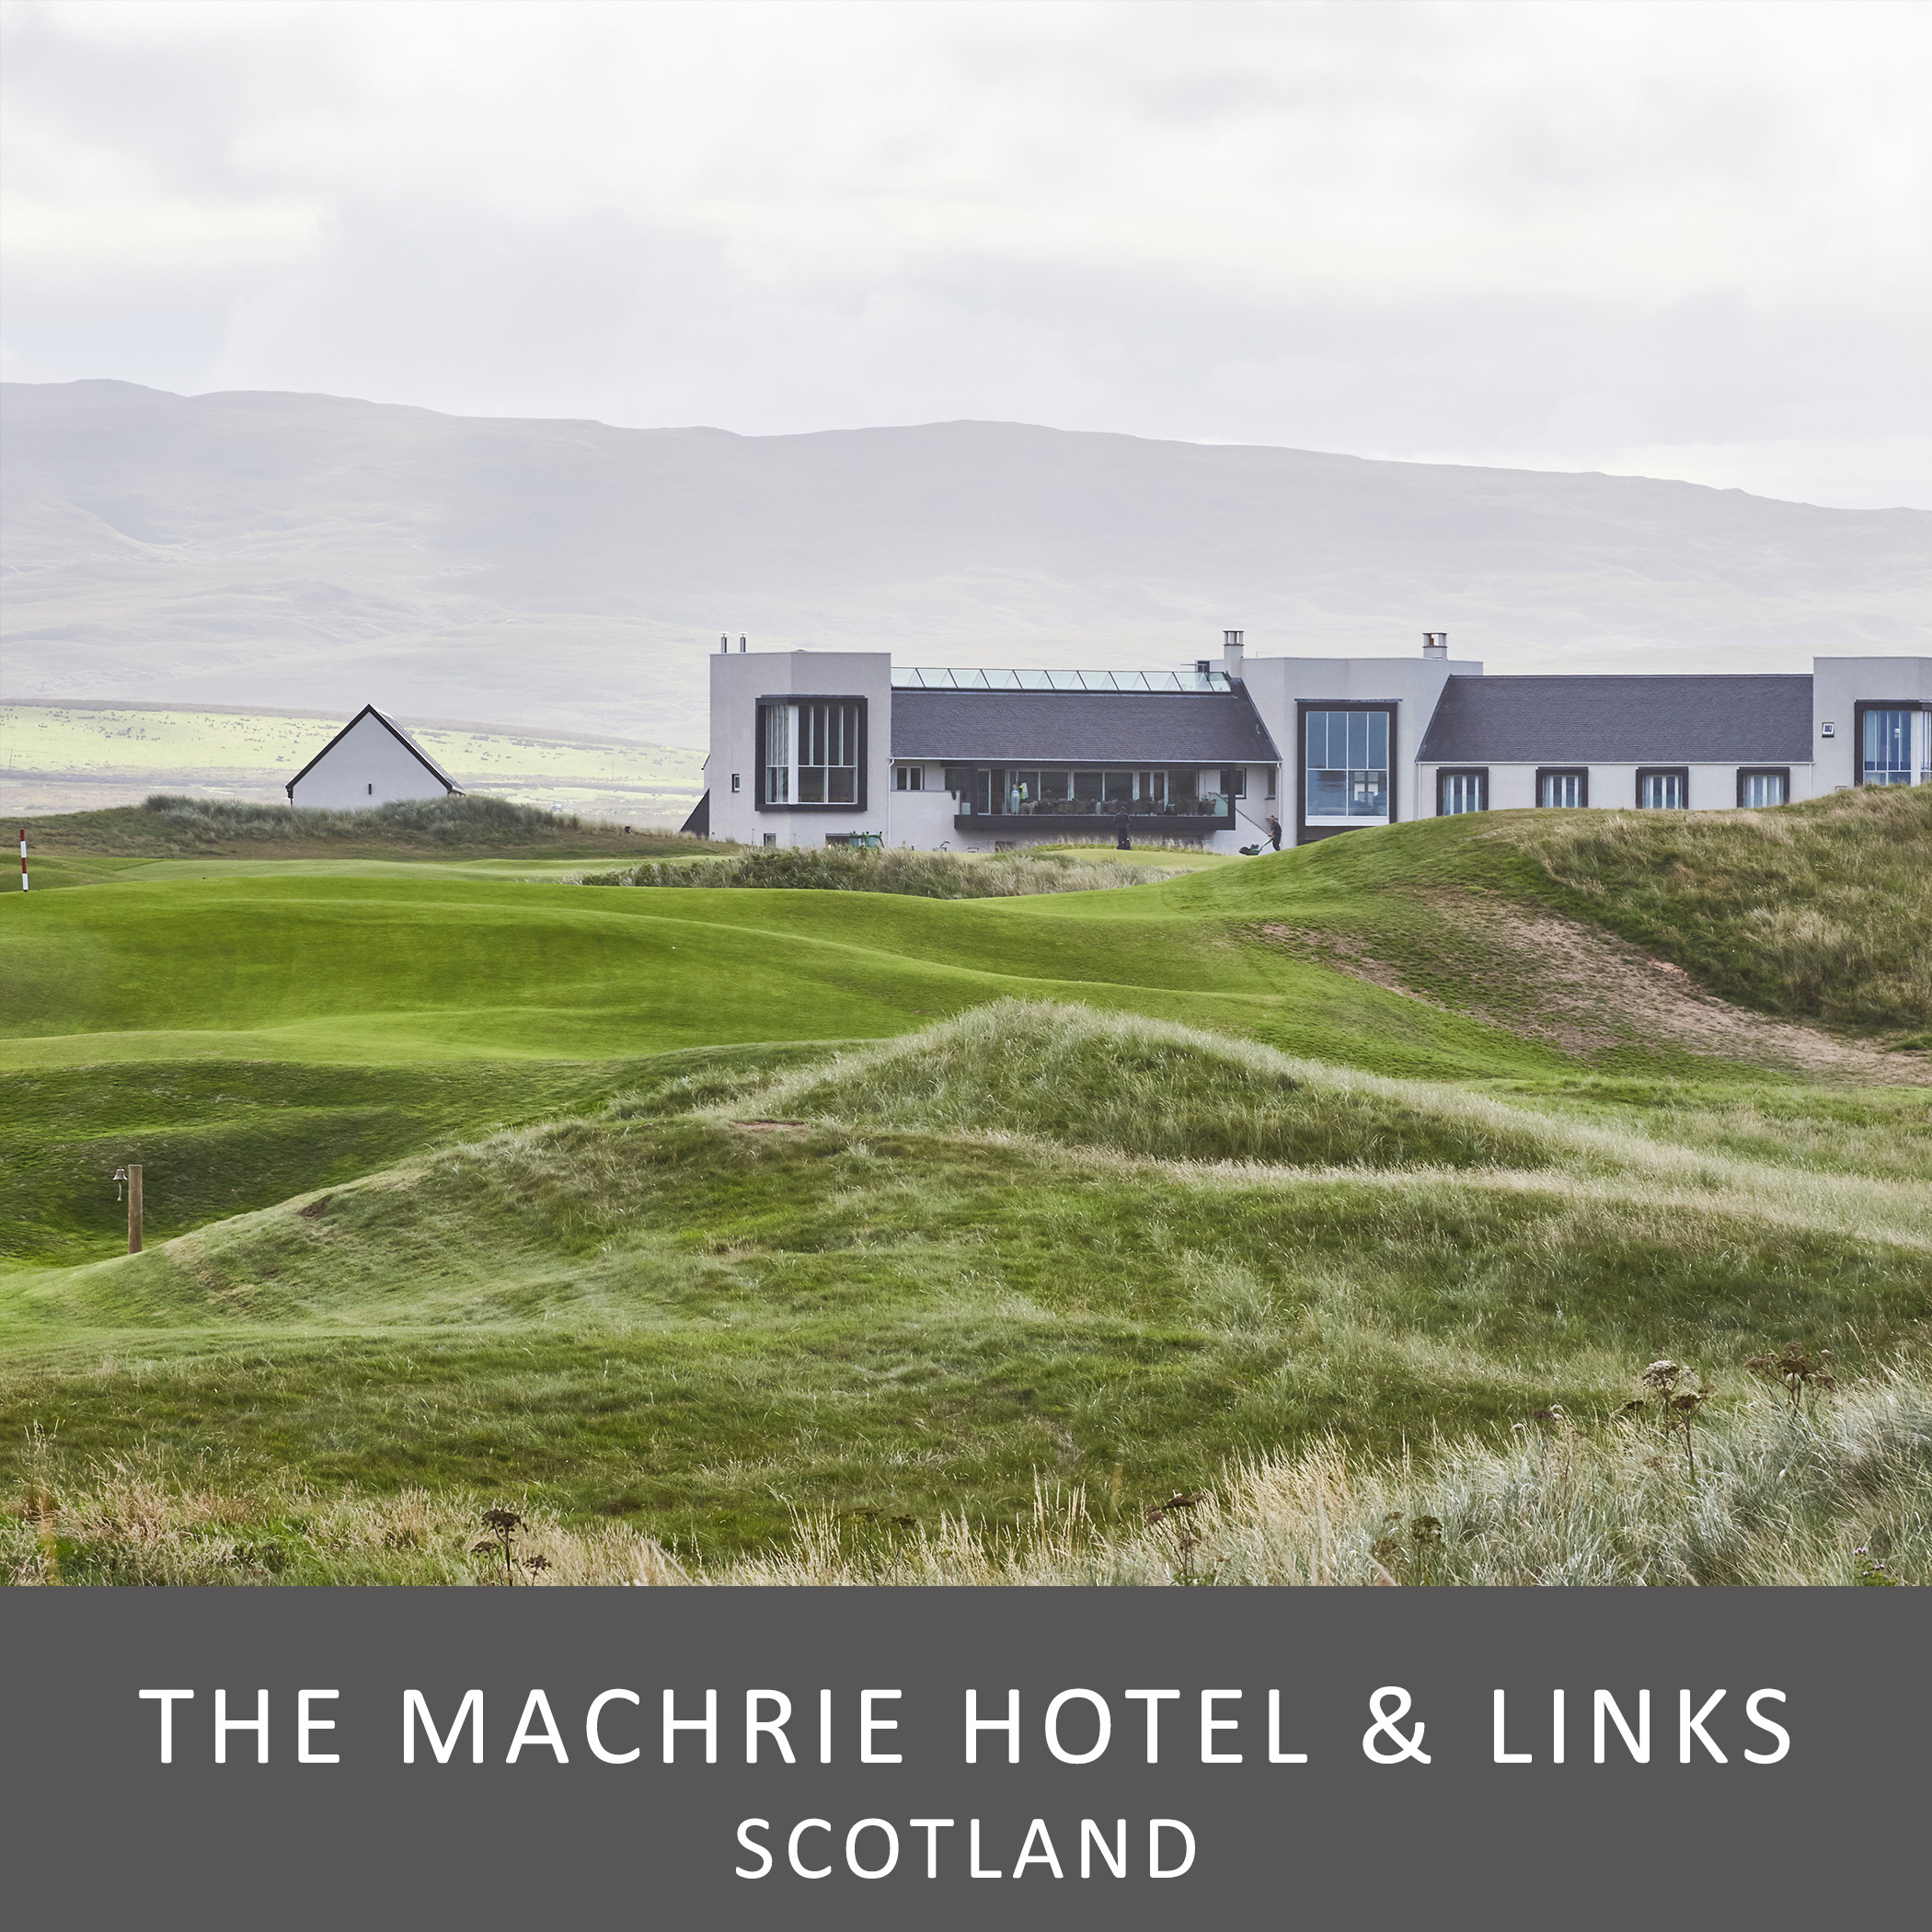 The Machrie Hotel & Links